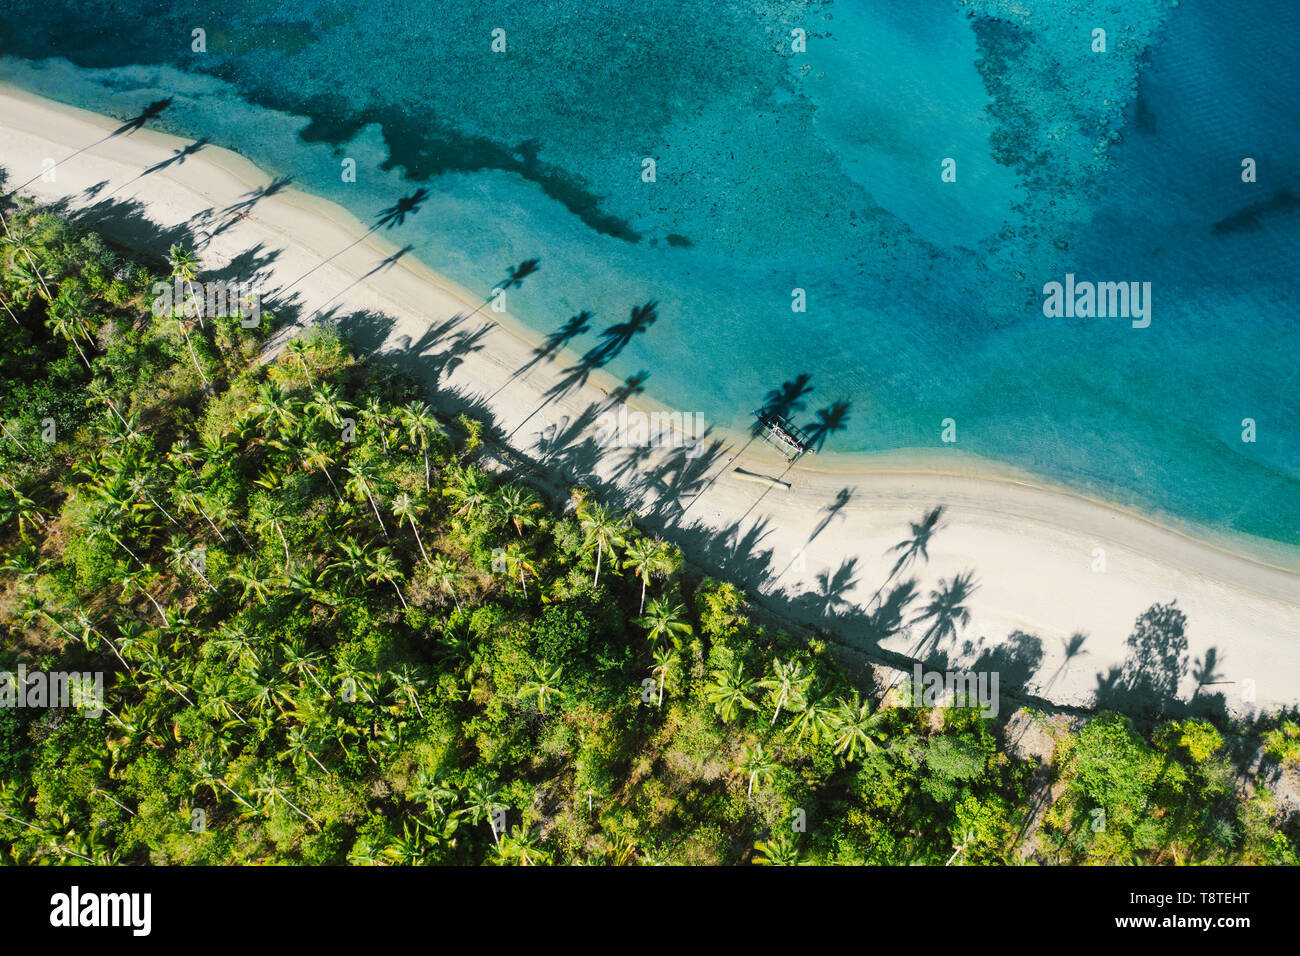 Top down view of tropical landscape with palm trees silhouettes Stock Photo